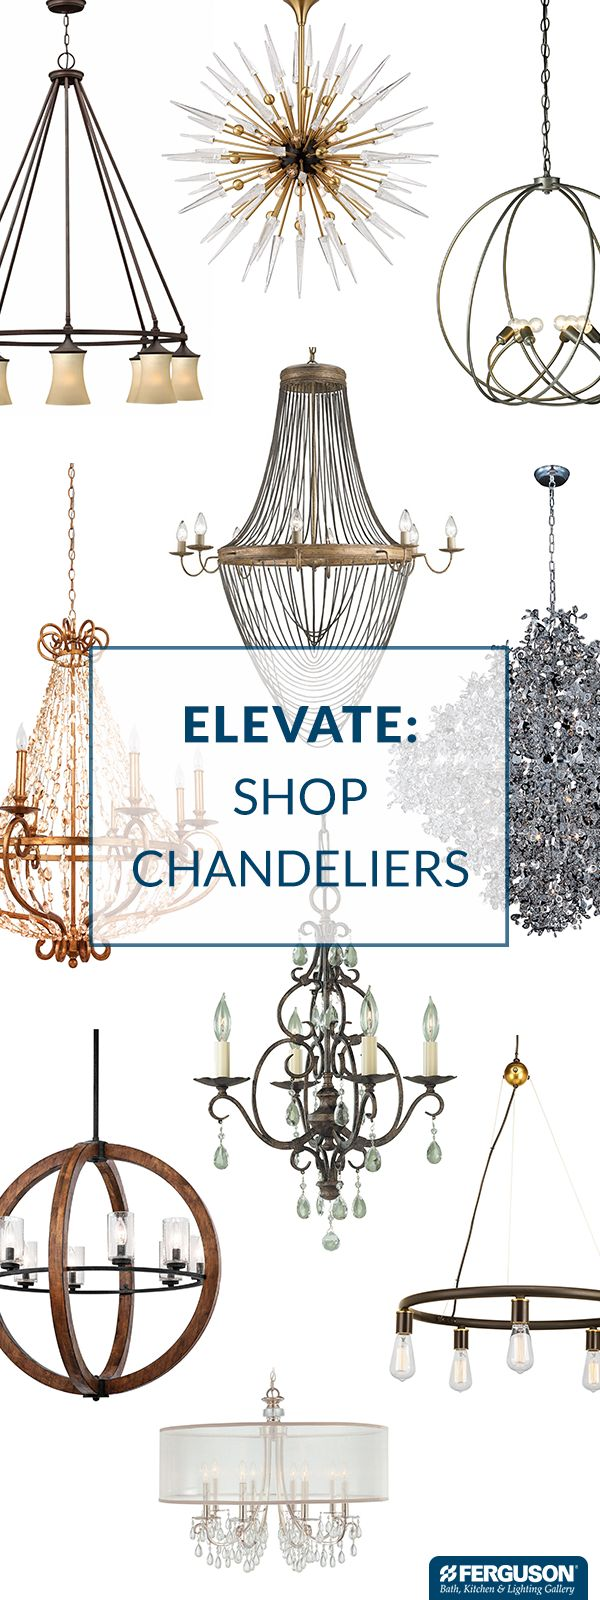 "Complete your dining room with a show-stopping chandelier from Ferguson Bath, Kitchen & Lighting Gallery. There's a chandelier for every style, whether you want classic elegance, bold contemporary or any look in between. A chandelier should be around 12"" smaller in diameter than the width of the table it hangs over. Ideally, the bottom of the chandelier should be 30 inches above the surface of your table. One of our knowledgeable product experts can help you select the perfect size."